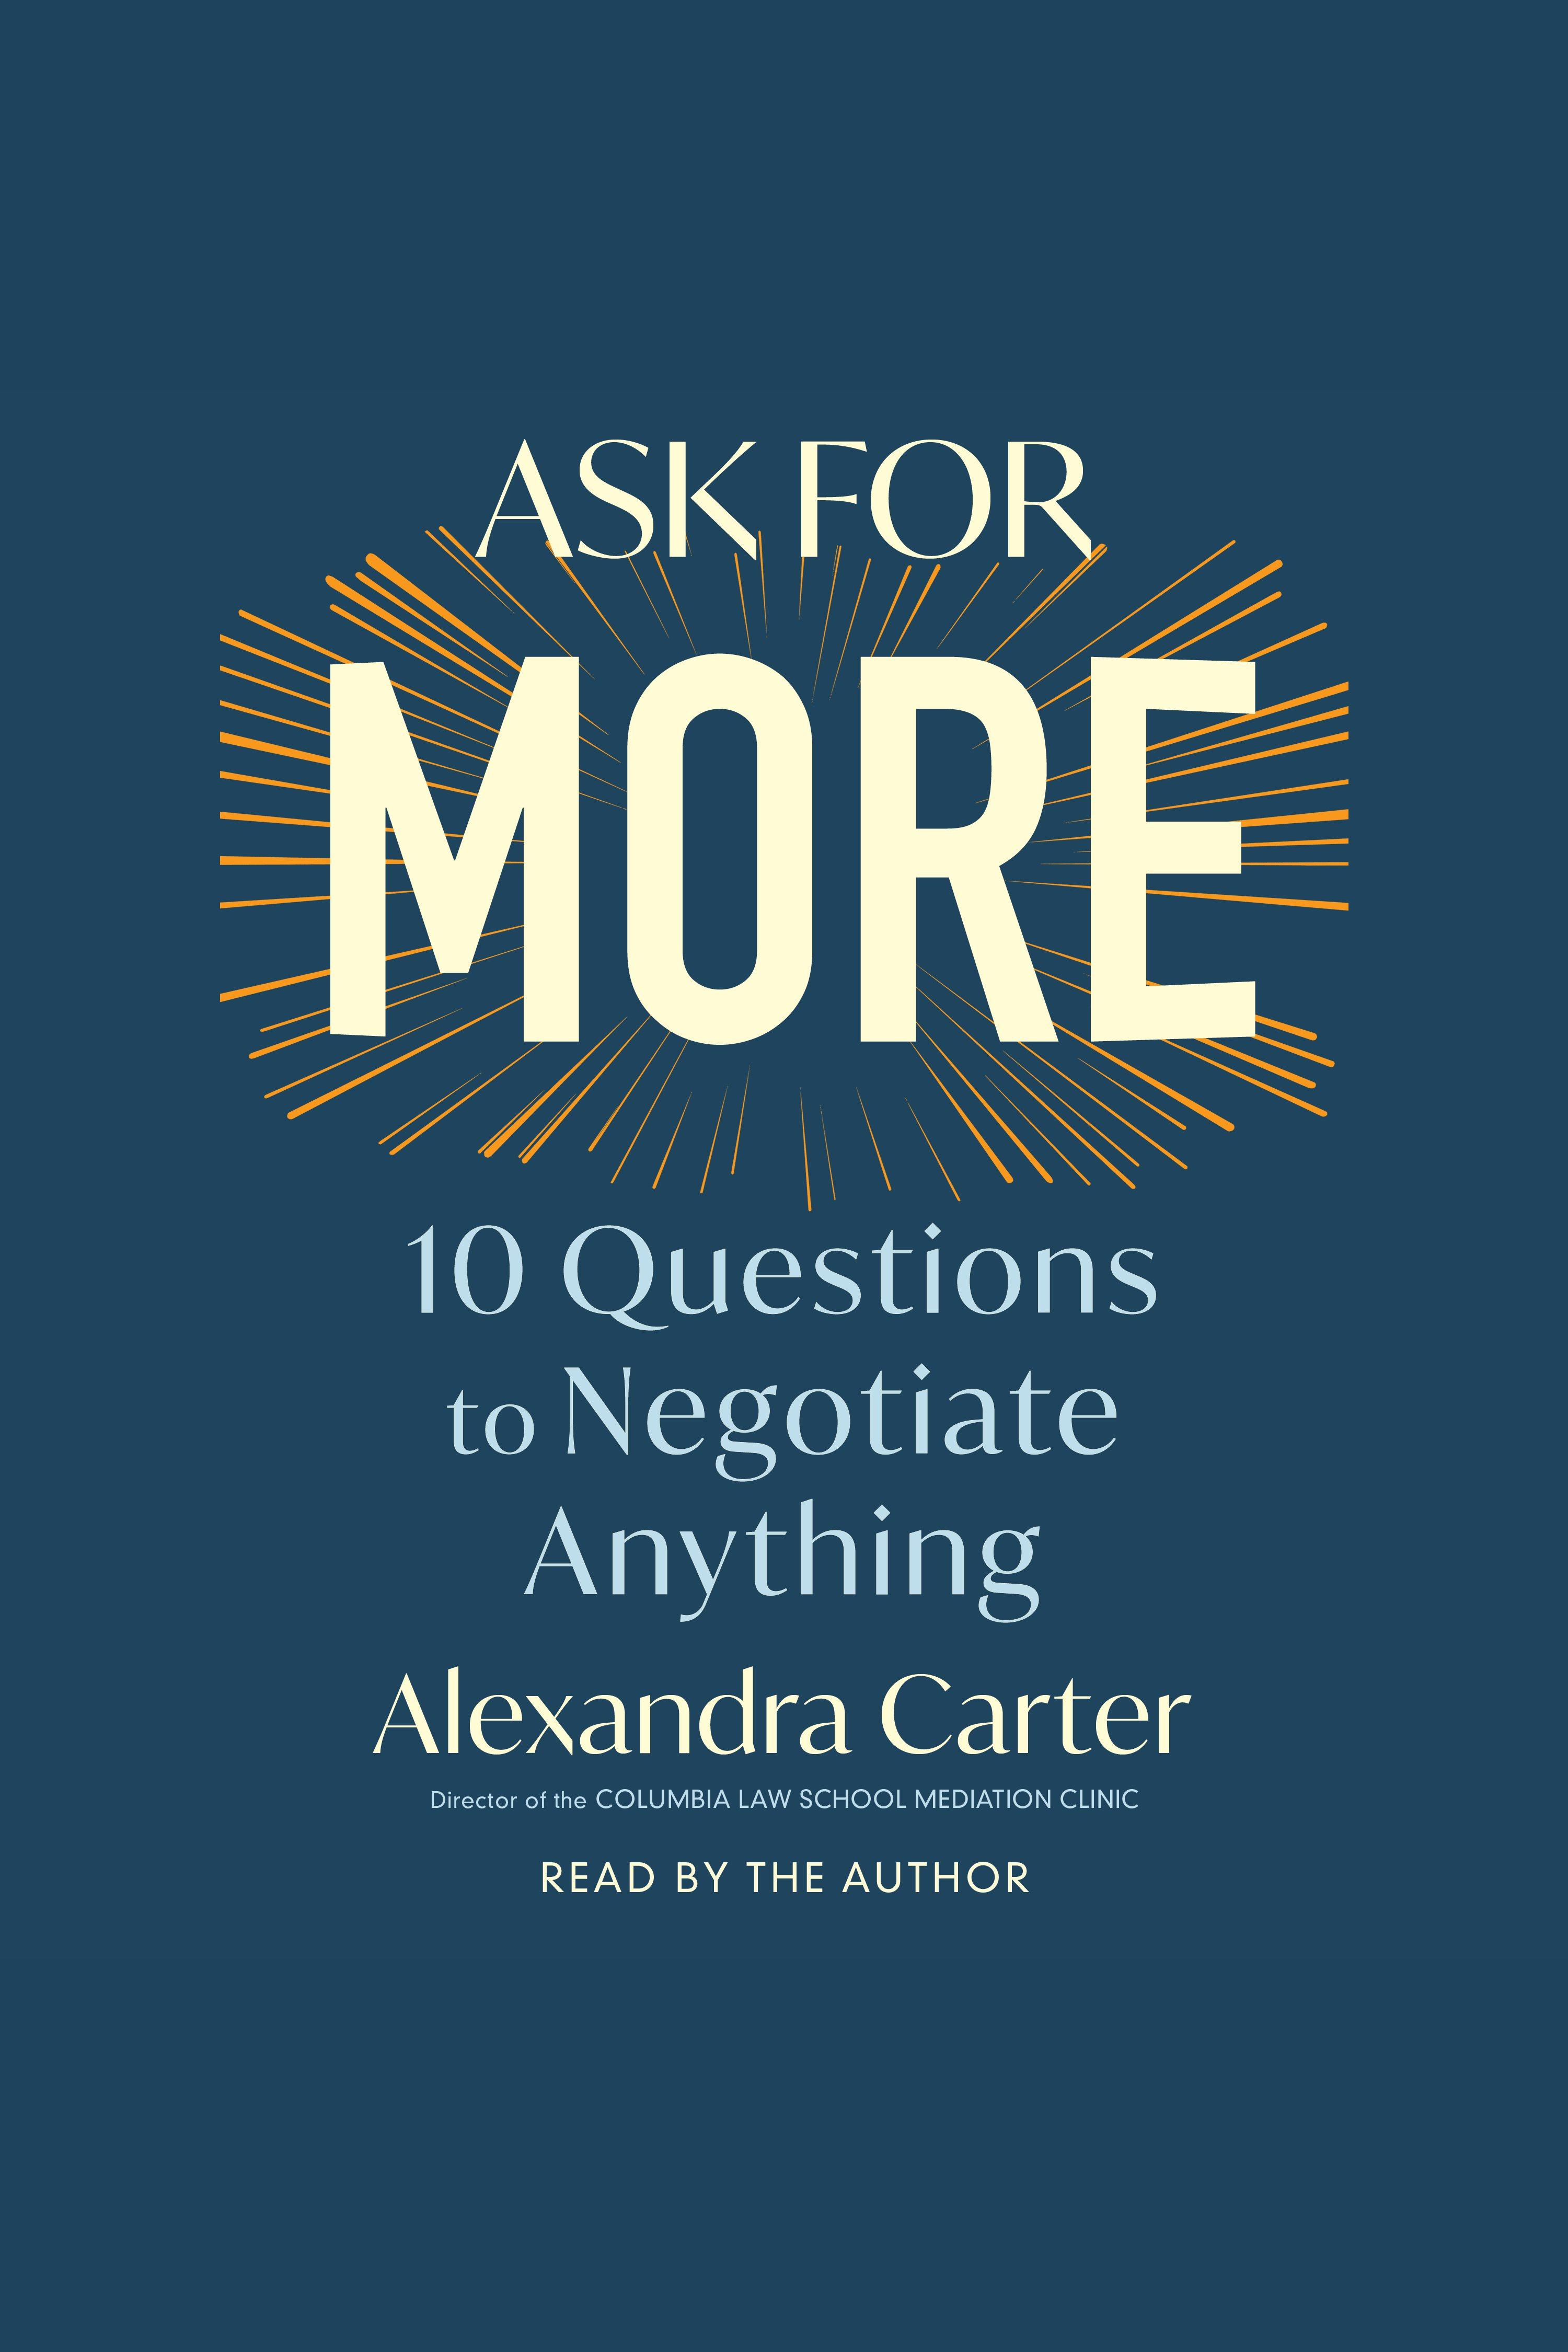 Ask For More 10 Questions to Improve Your Negotiations and Relationships